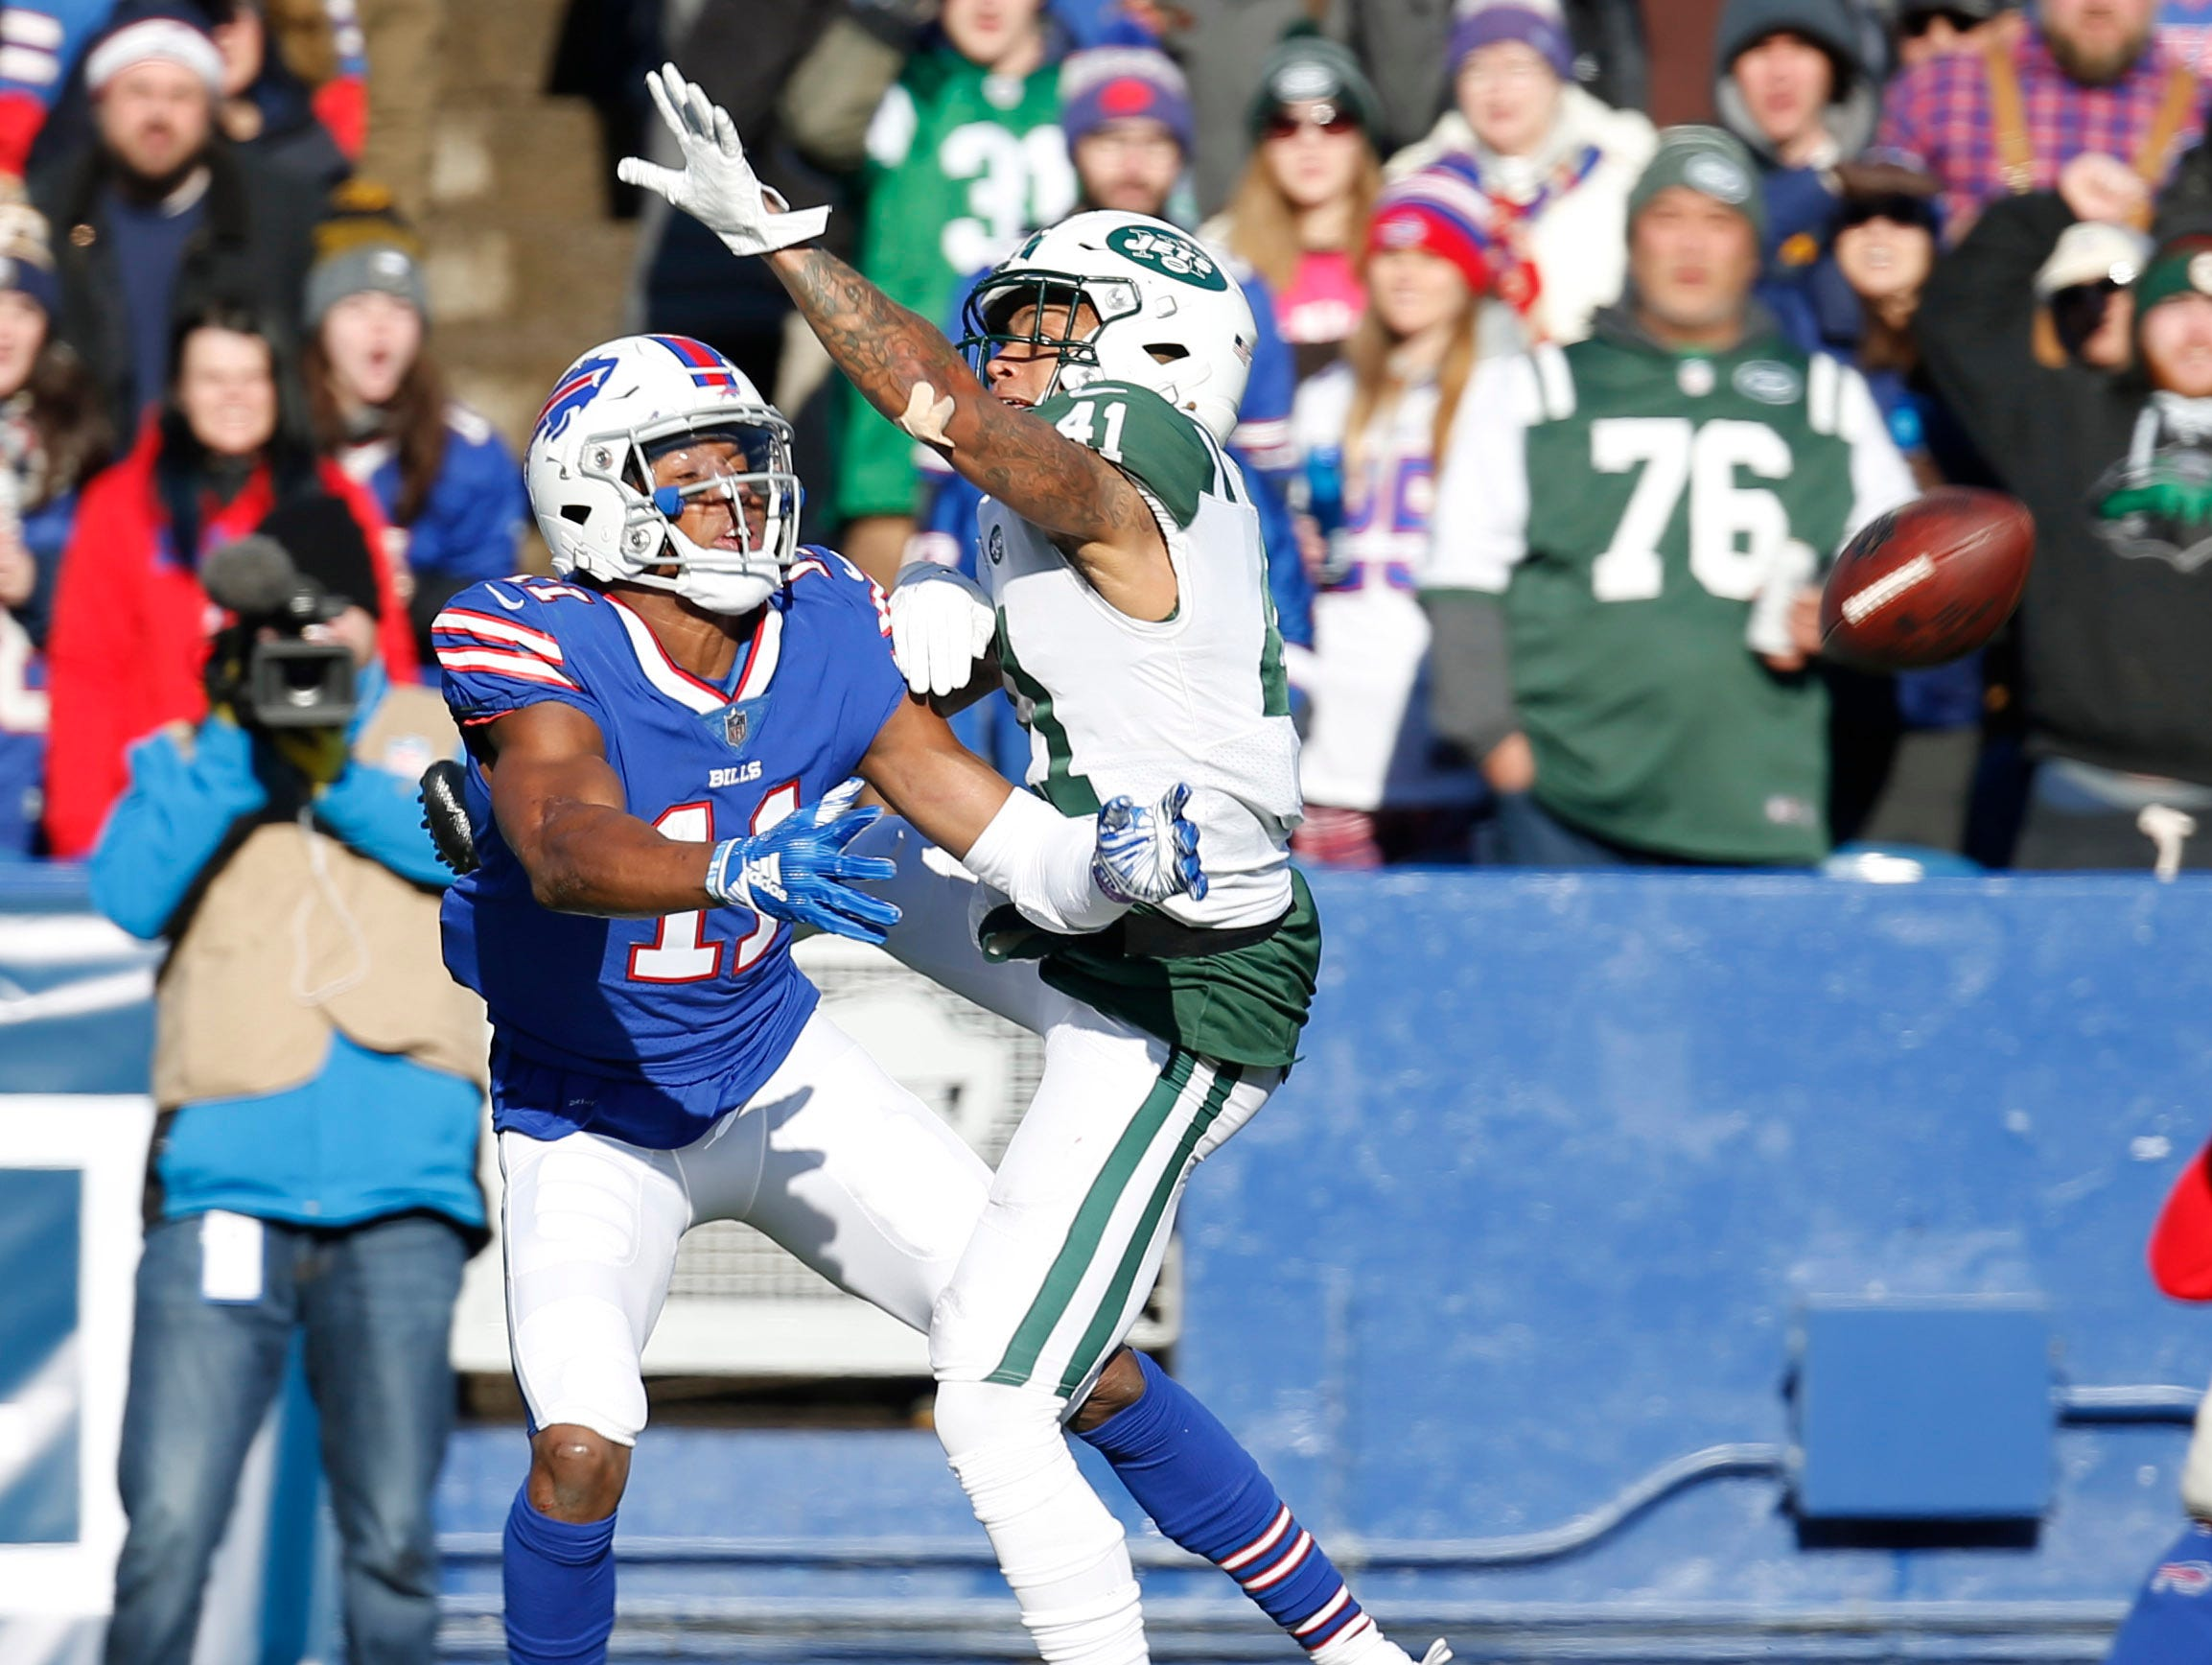 Dec 9, 2018; Orchard Park, NY, USA; Buffalo Bills wide receiver Zay Jones (11) looks to make a catch as he's interfered by New York Jets cornerback Buster Skrine (41) during the first half at New Era Field. Mandatory Credit: Timothy T. Ludwig-USA TODAY Sports